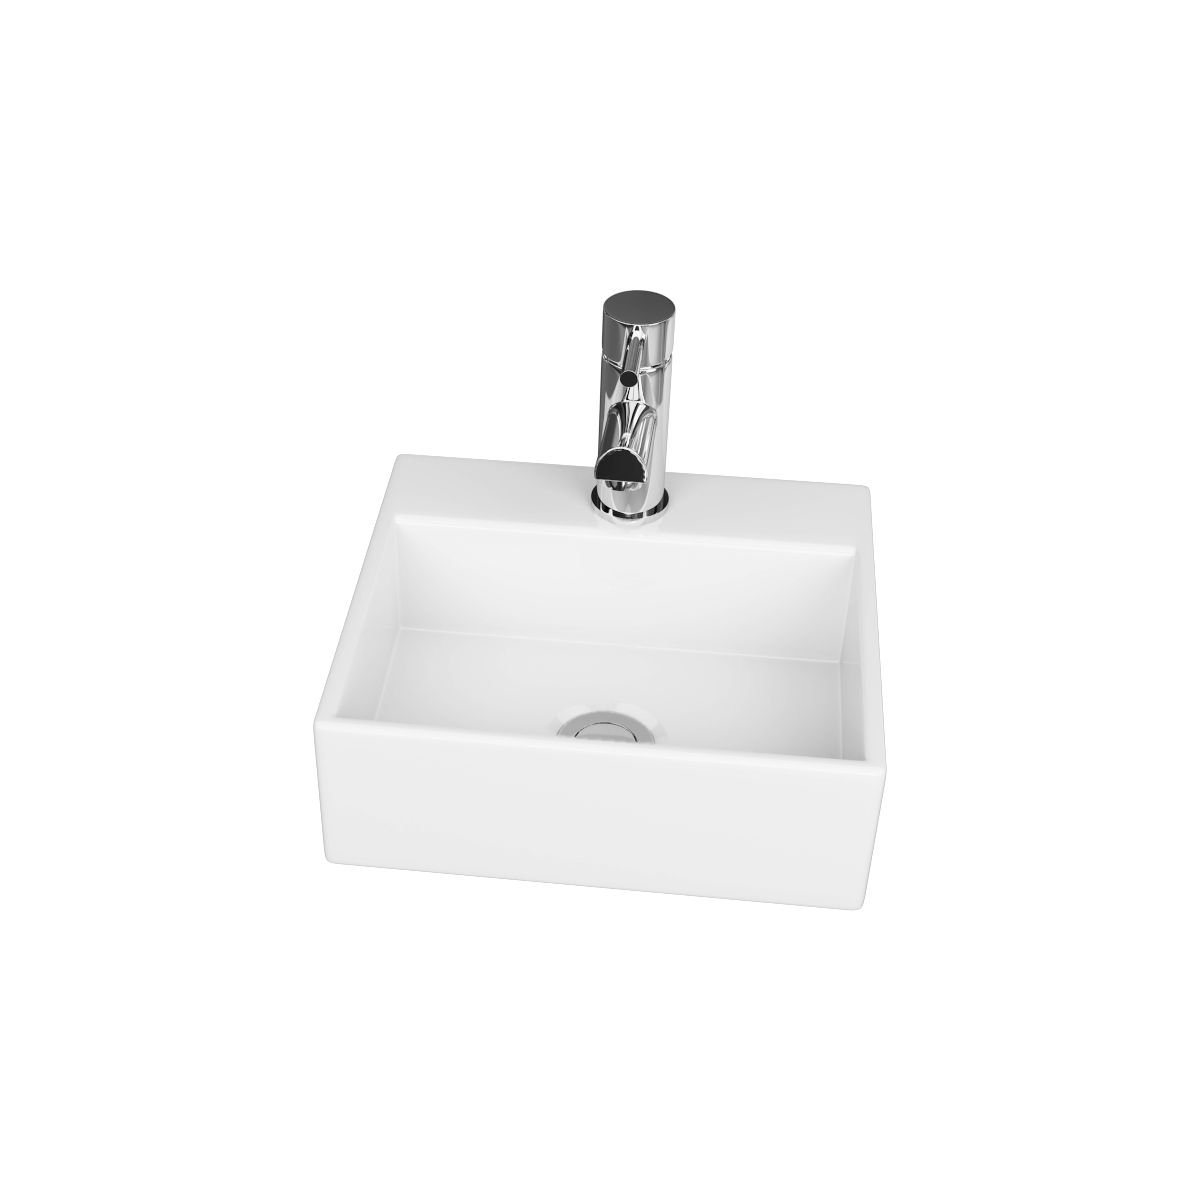 Cassellie 1 Tap Hole Wall Hung Cloakroom Basin 330mm